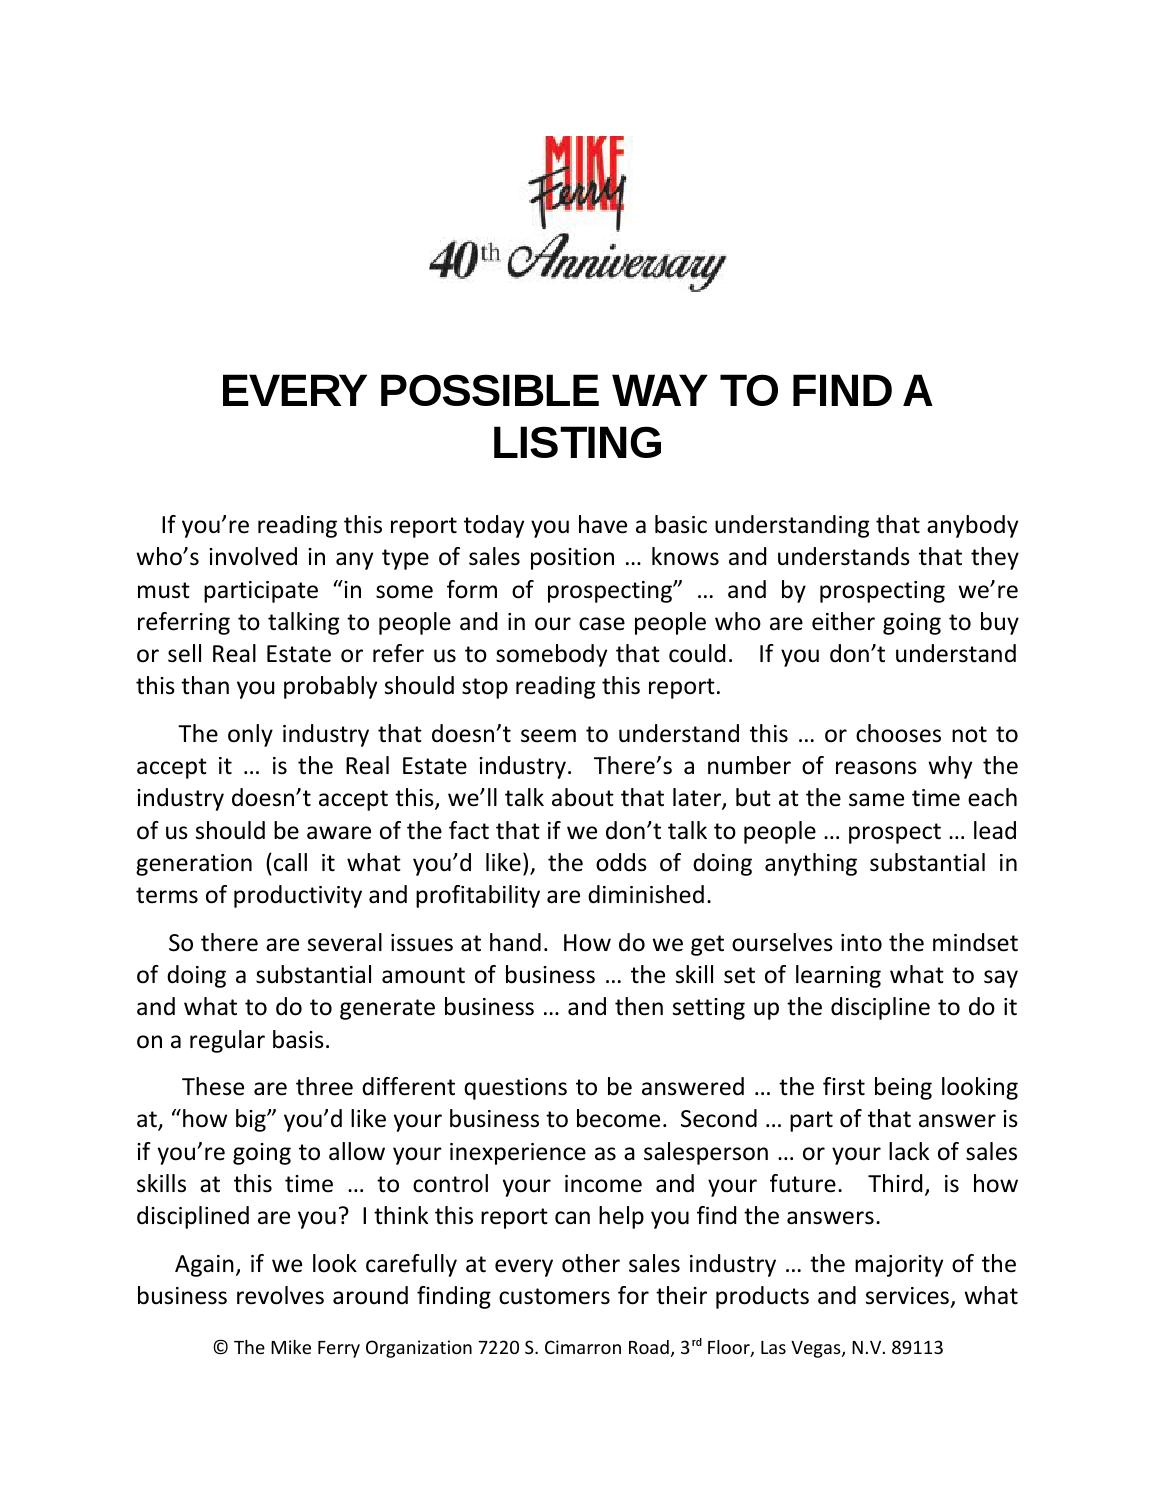 Every Possible Way To Find A Listing by Mike Ferry